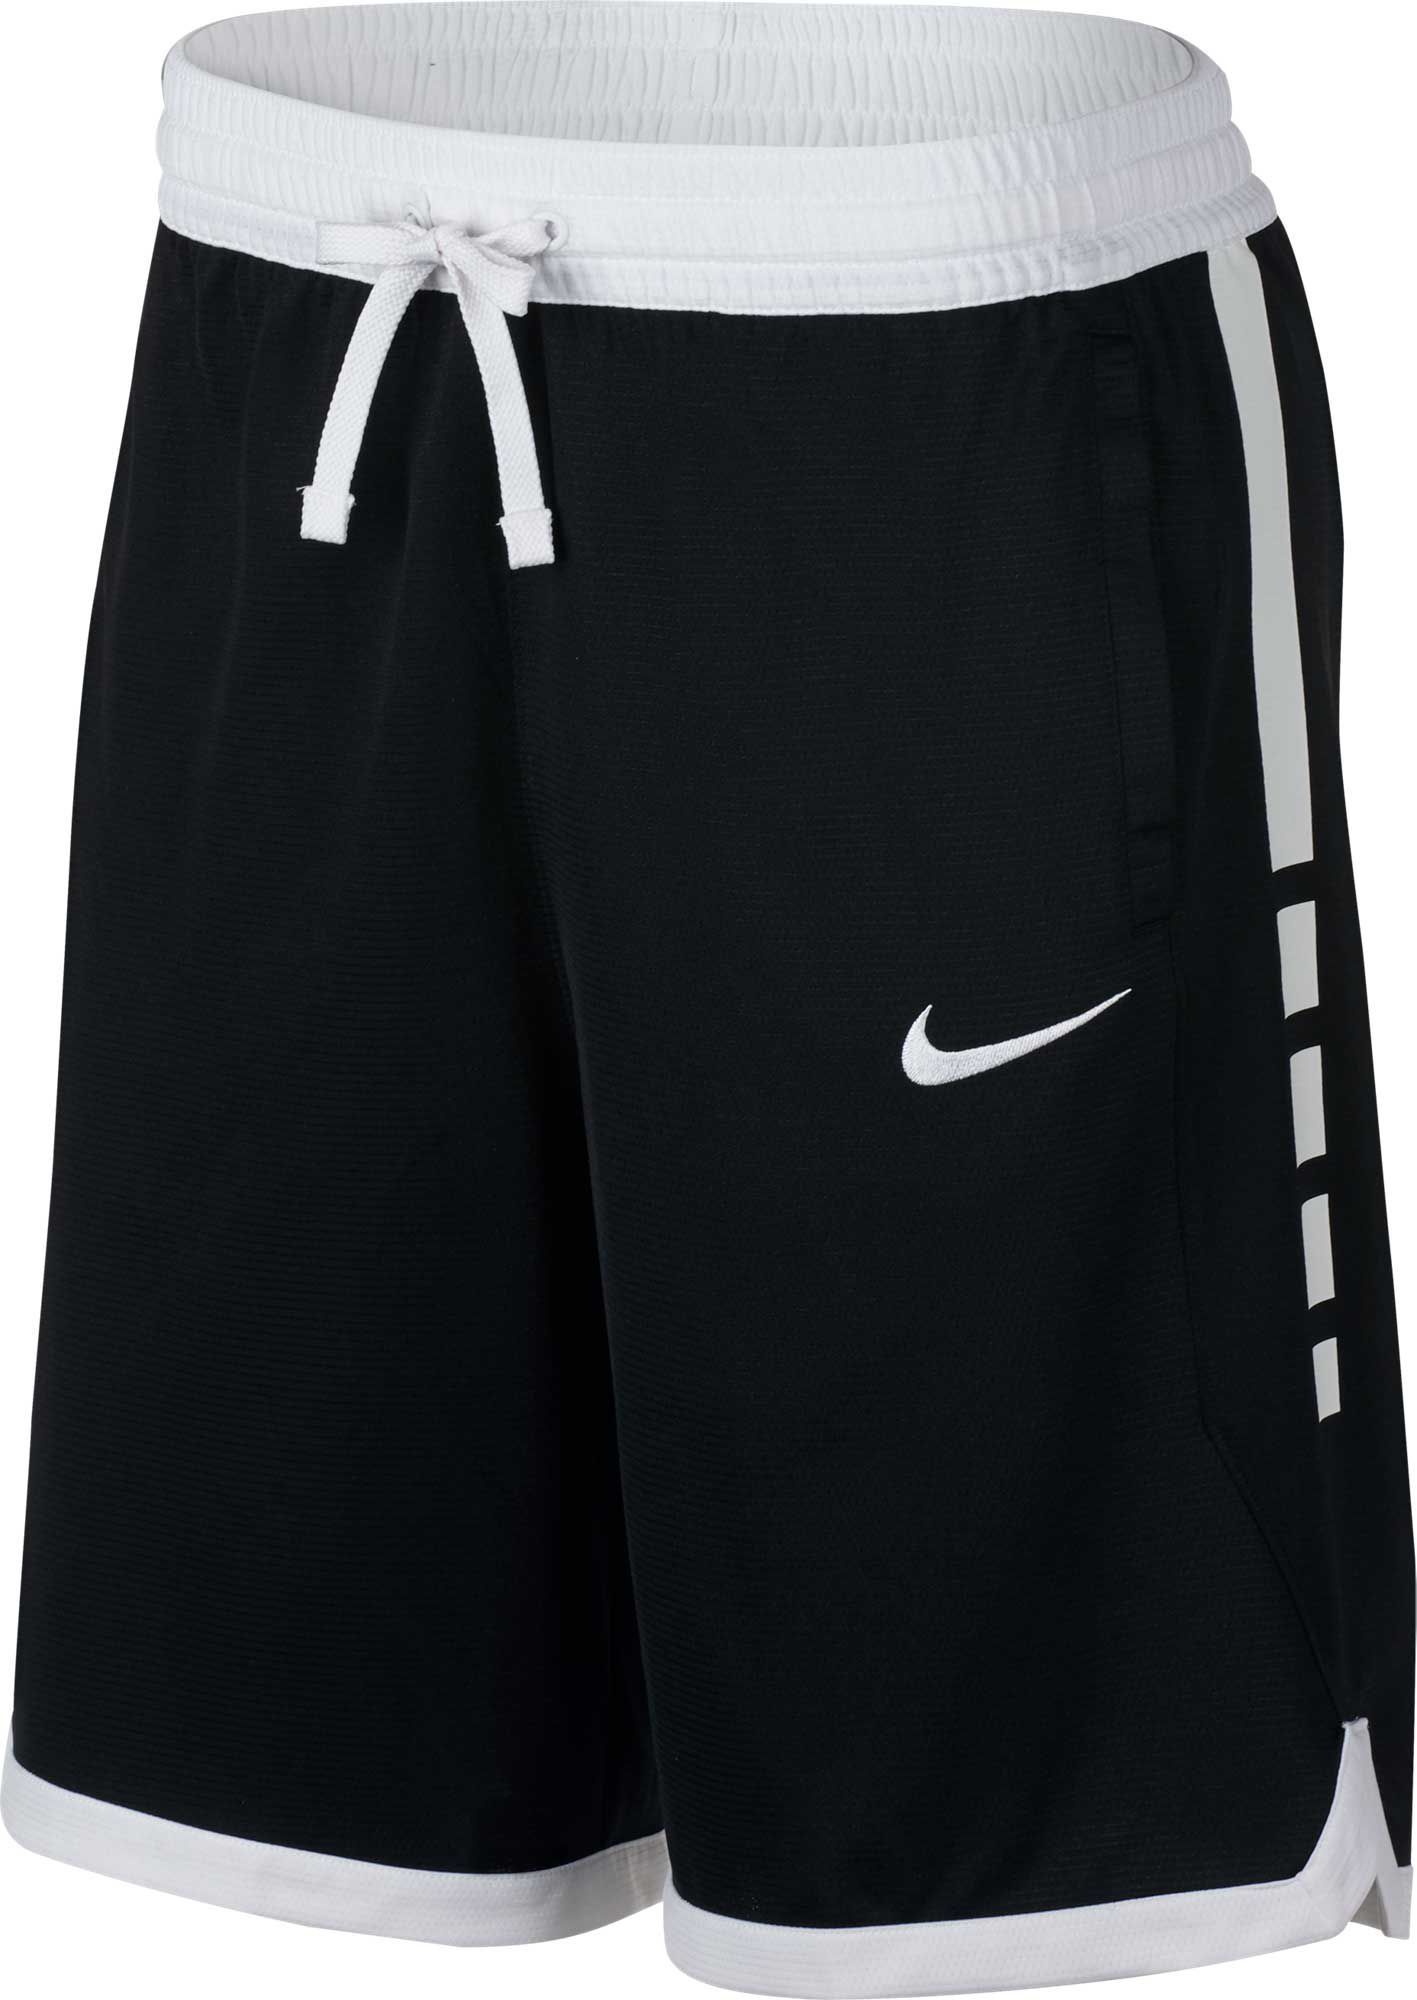 Nike Men S Dry Elite Stripe Basketball Shorts Regular And Big Tall Size Xxl Black In 2020 Basketball Clothes Womens Basketball Shorts Nike Basketball Shorts